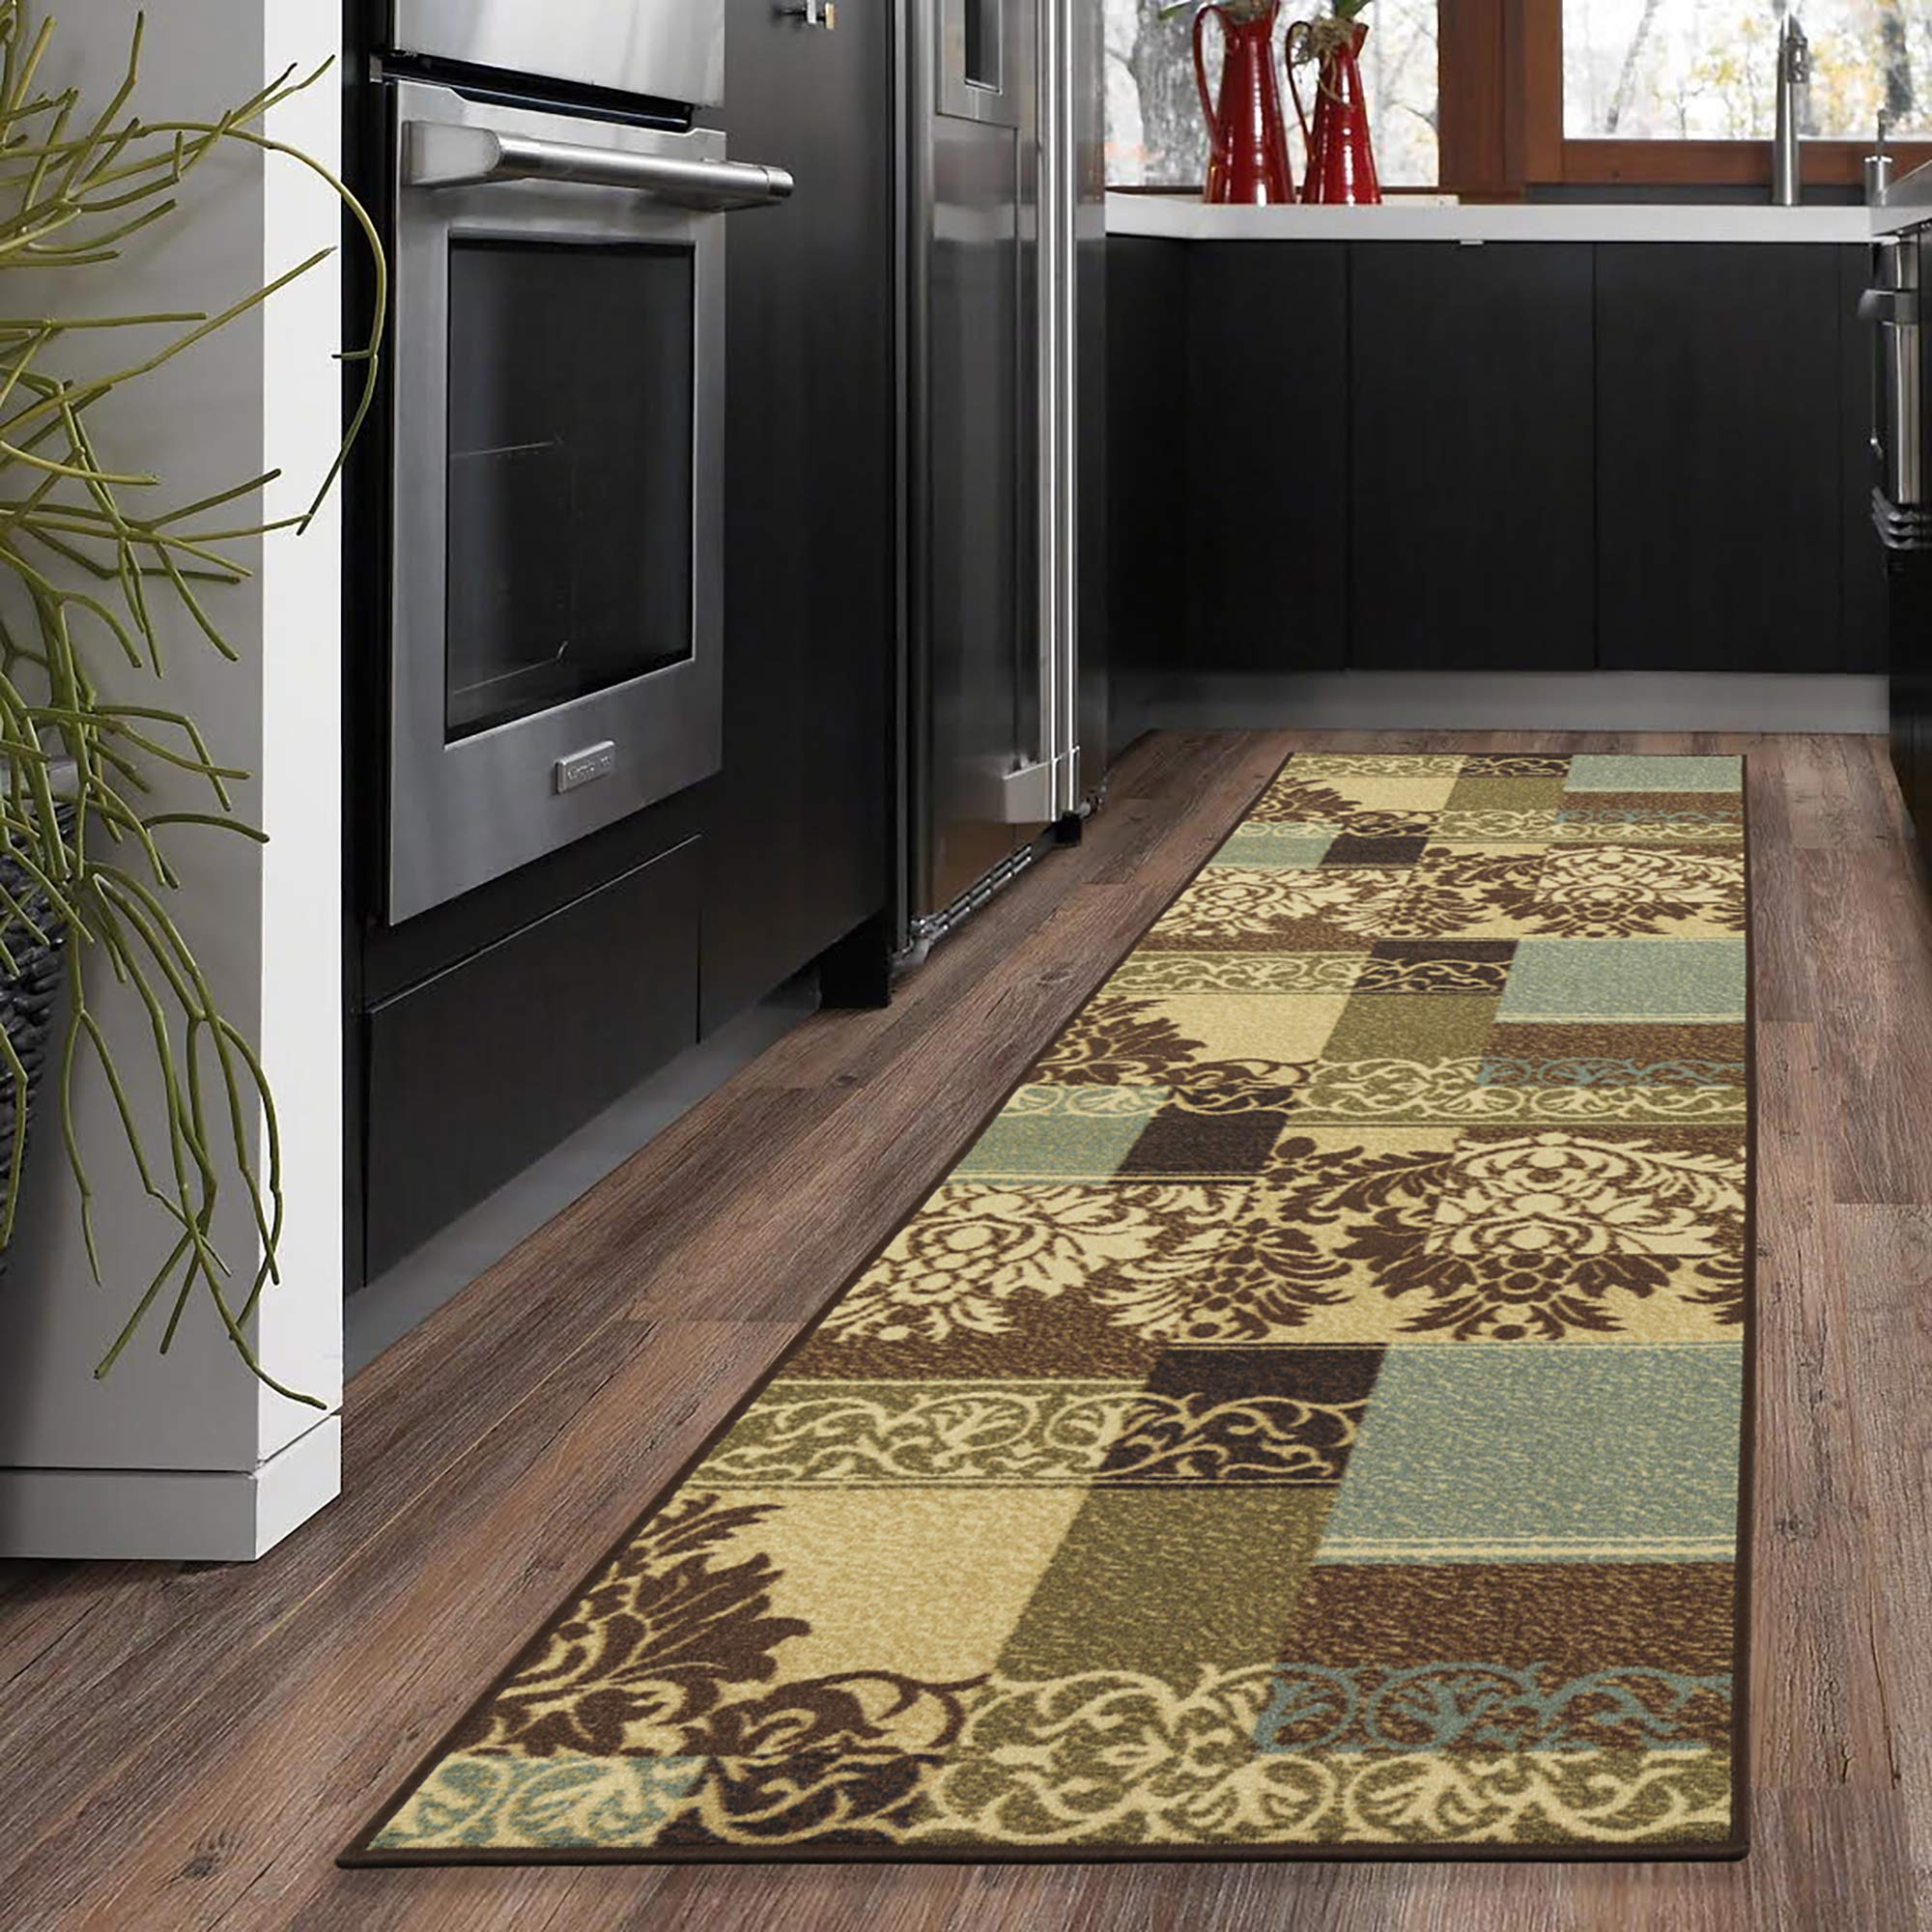 110W x 70L Ottomanson Ottohome Collection Brown Color Contemporary Bordered Design Runner Rug with Non-Skid Rubber Backing